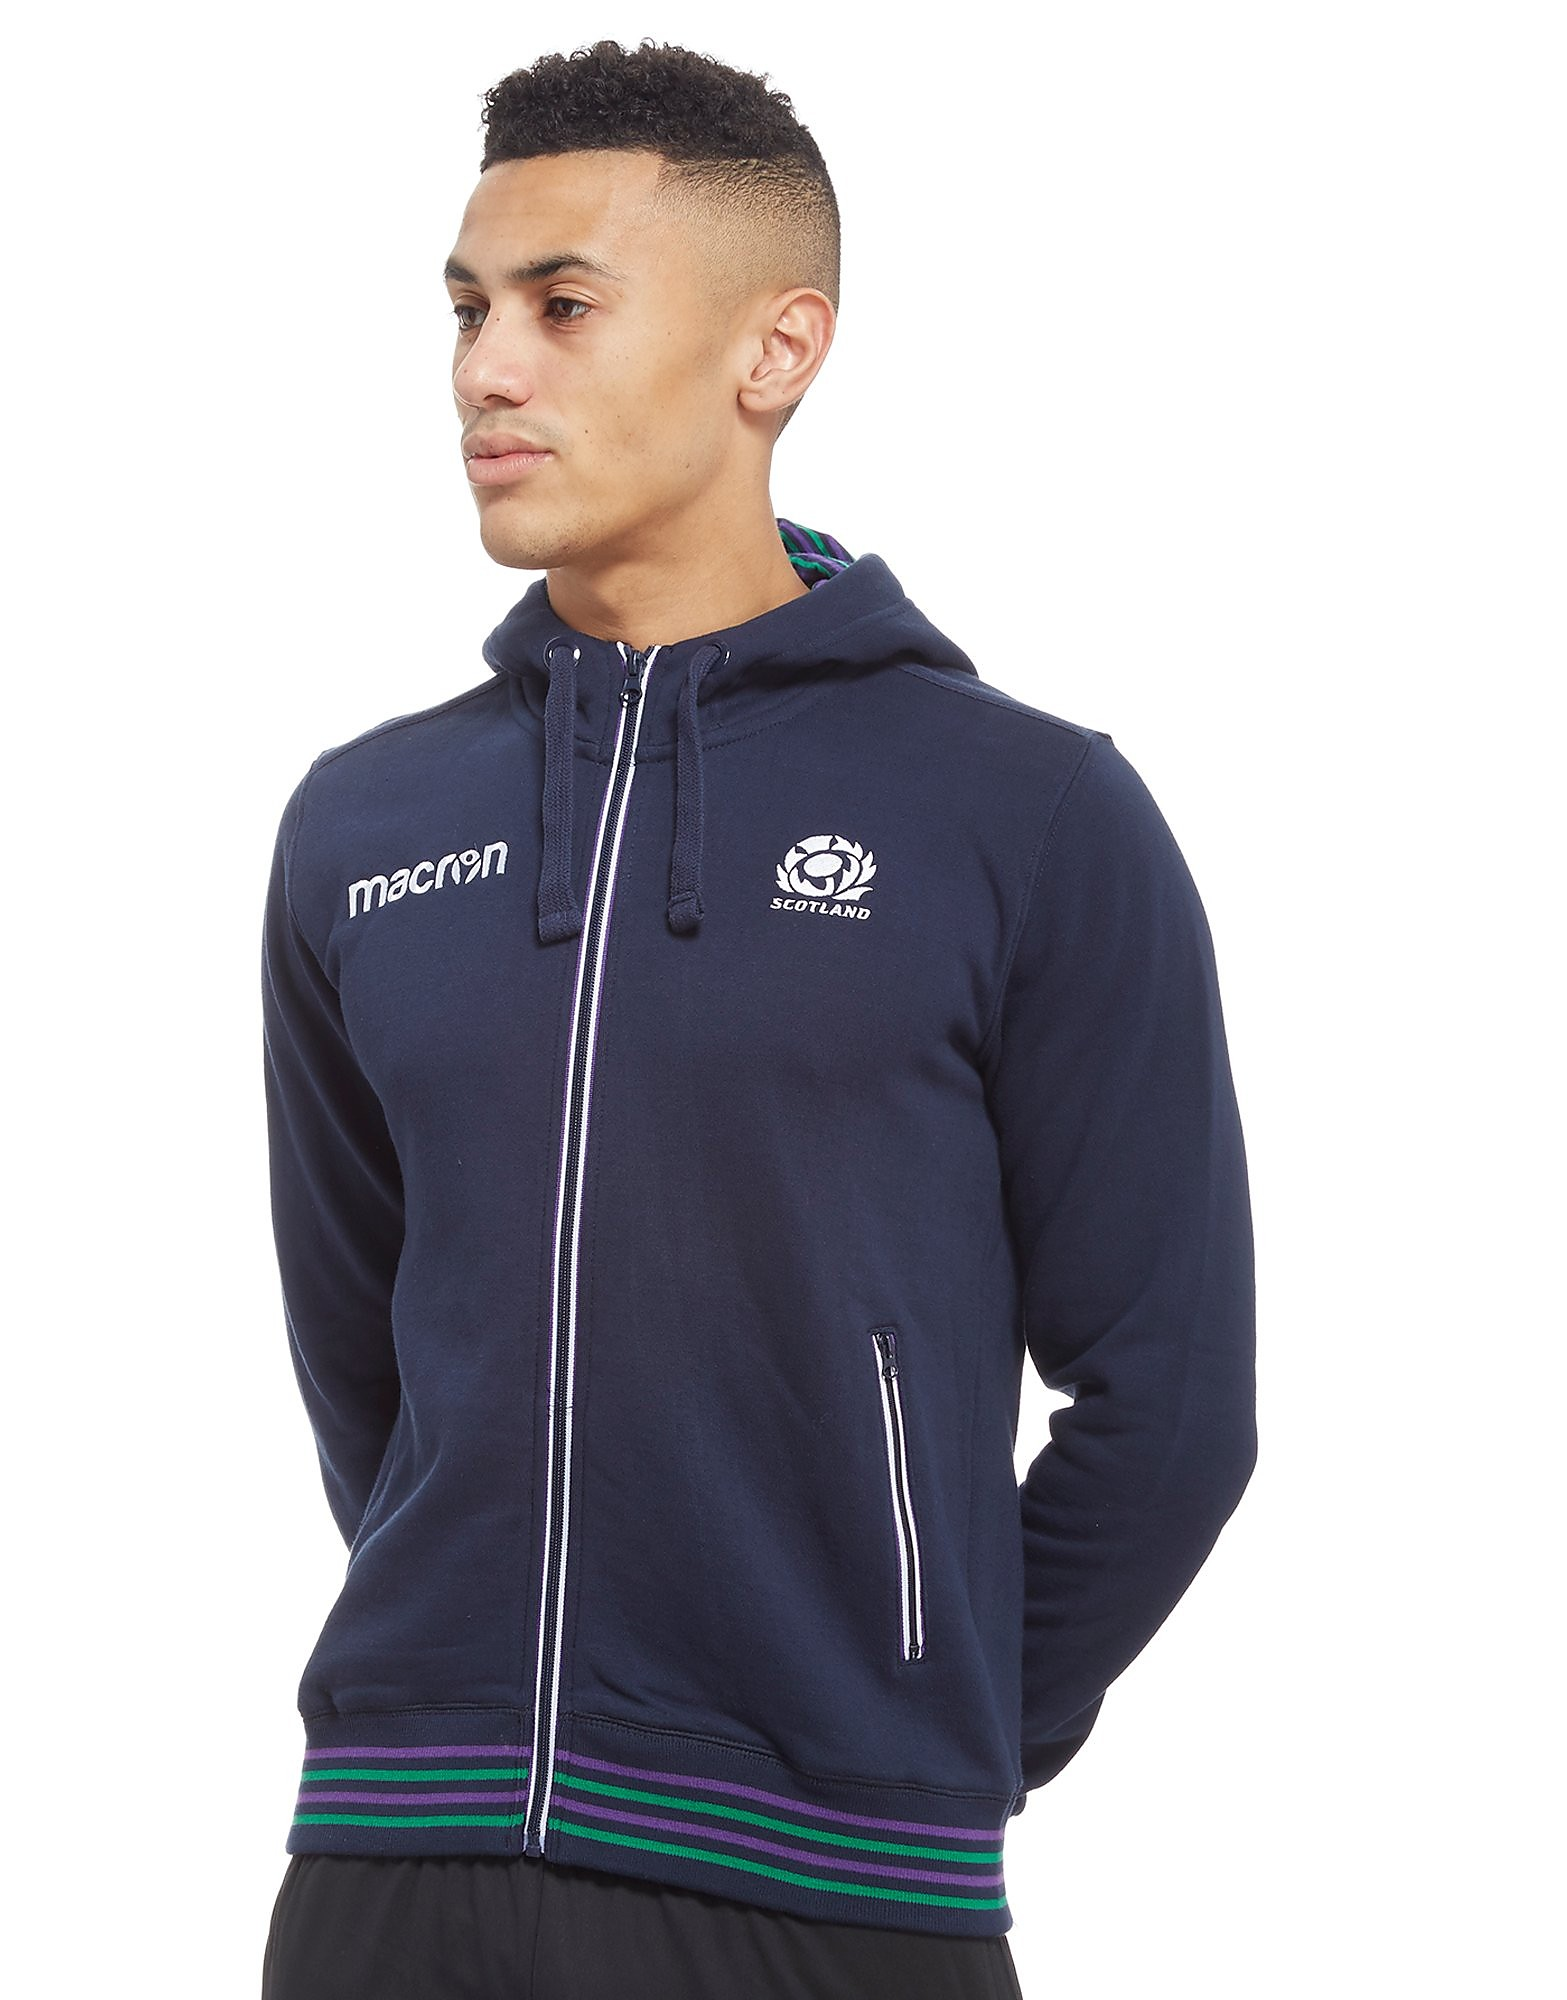 Macron Scotland Rugby Union Hoodie